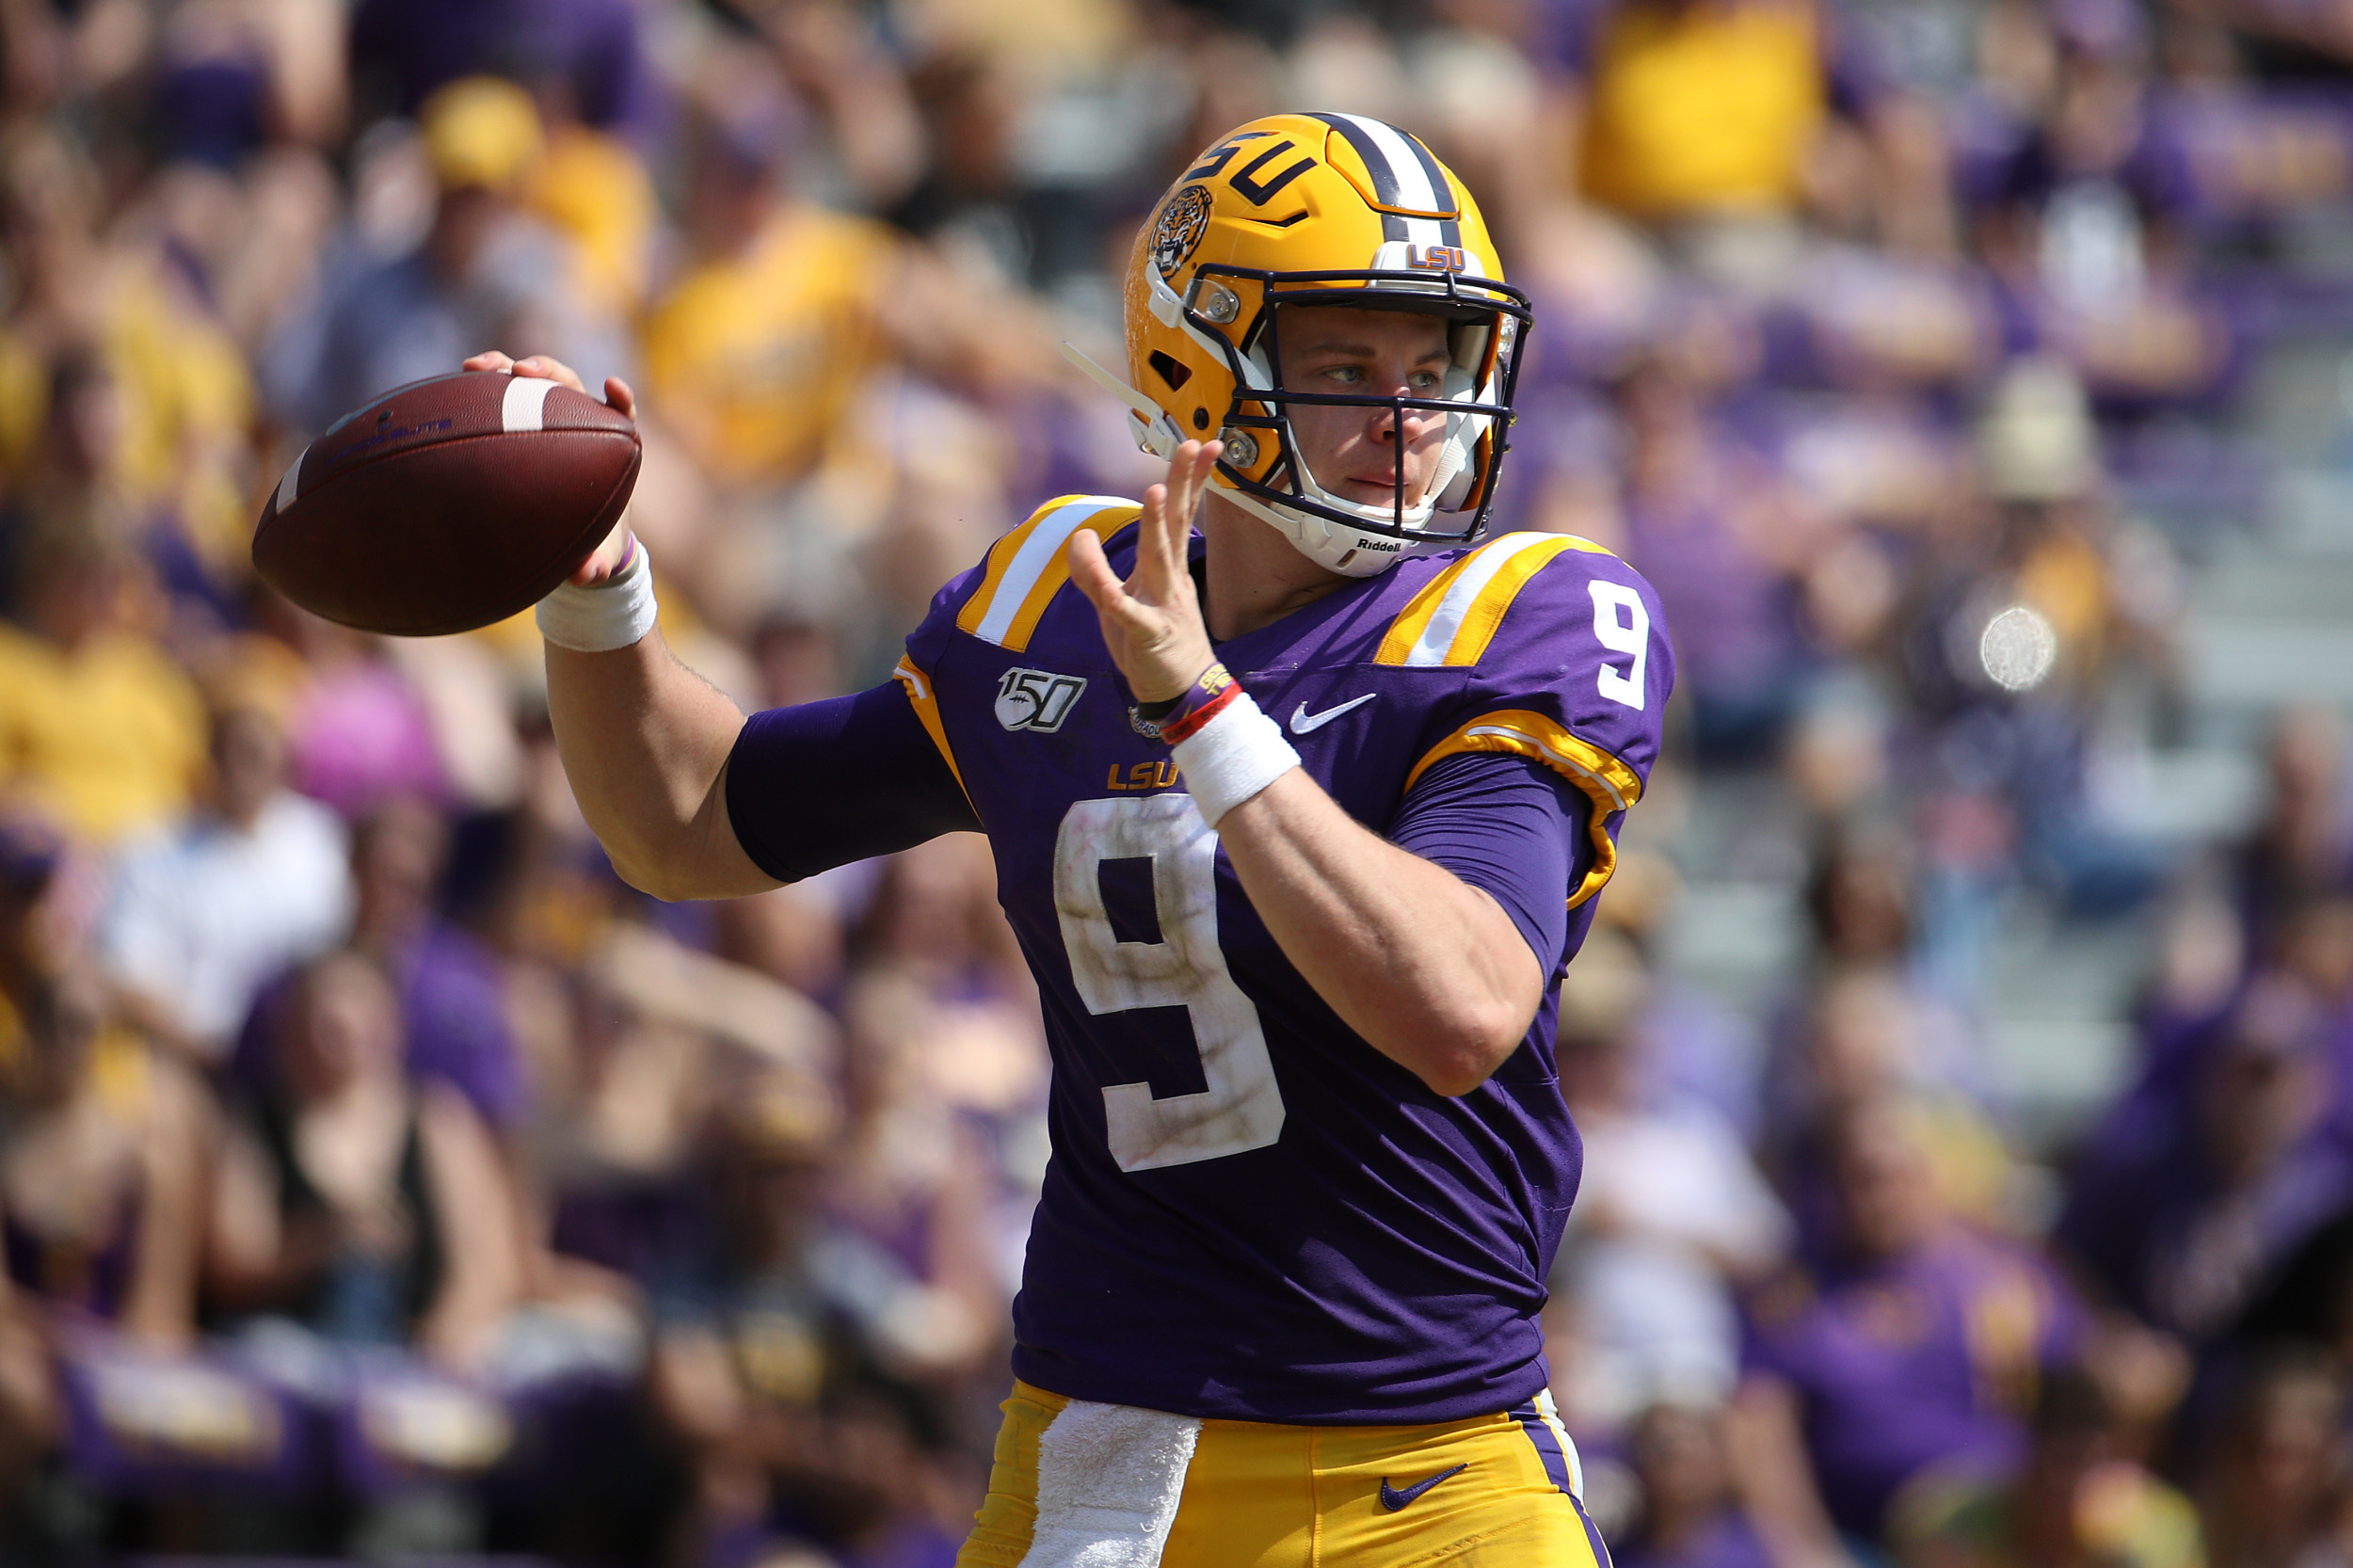 College Football 2019 Where To Watch Florida Vs Lsu Tv Channel Live Stream And Odds